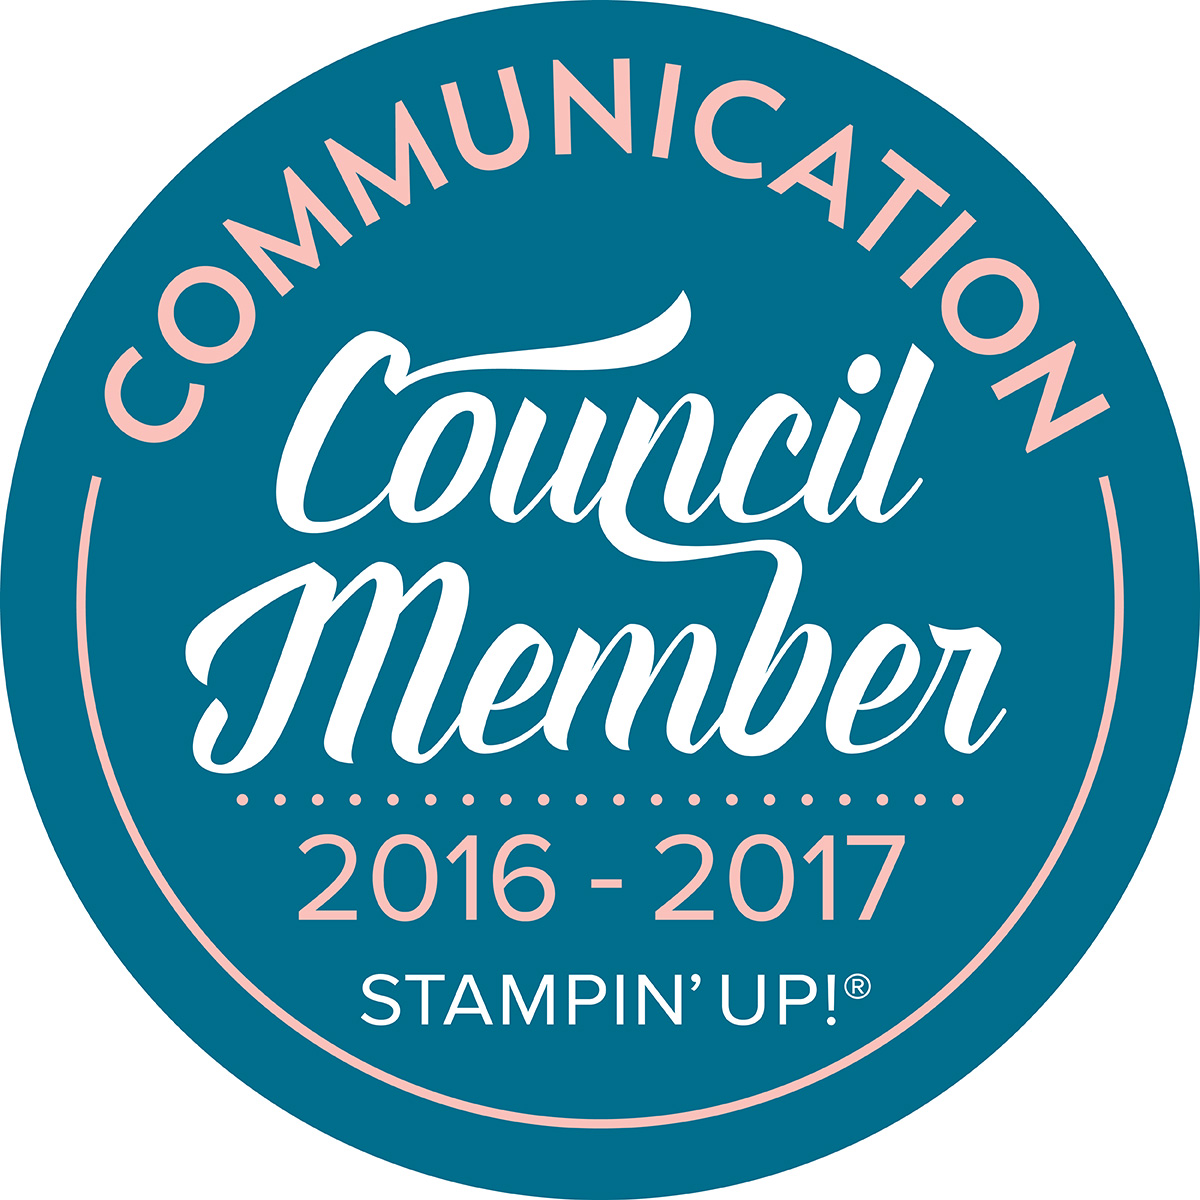 Stampin' Up! Communication Council Member